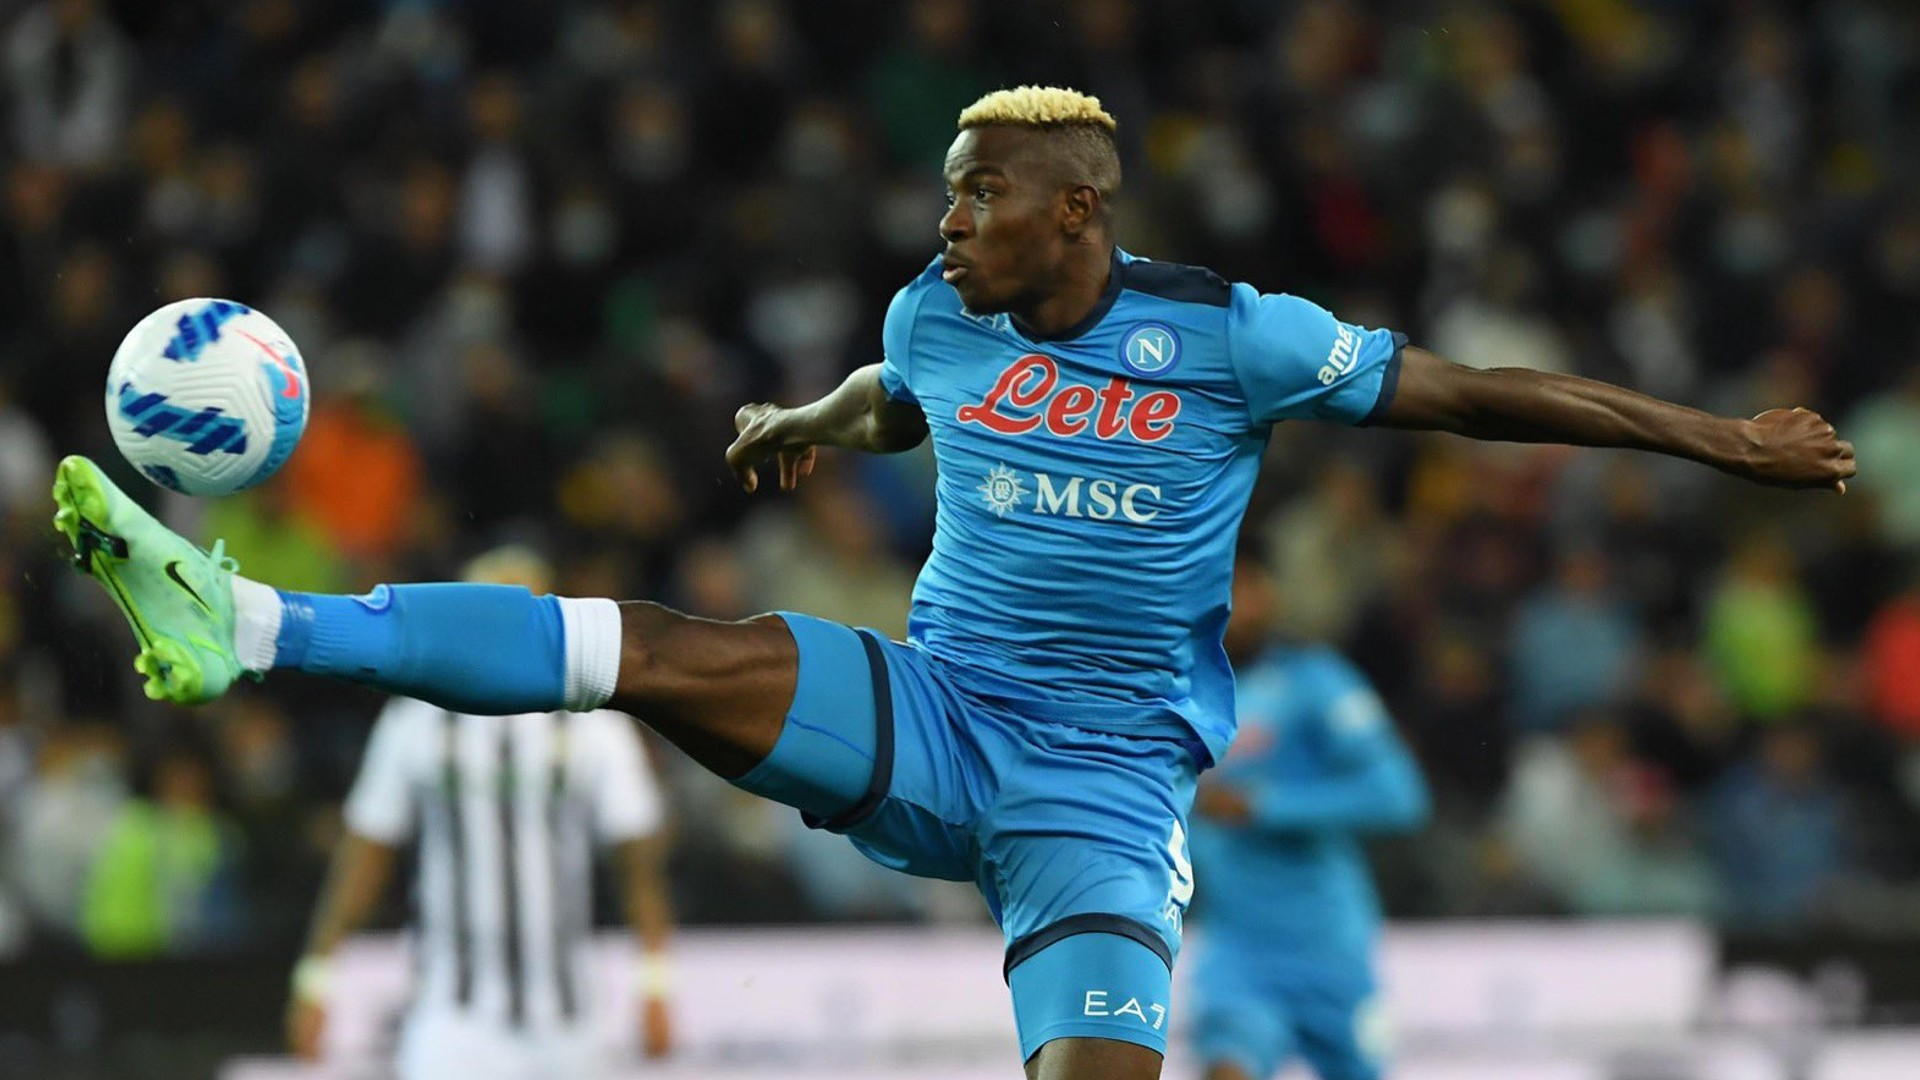 'Osimhen hard to catch in open space' – Napoli's Spalletti sings striker's praise after Udinese thrashing